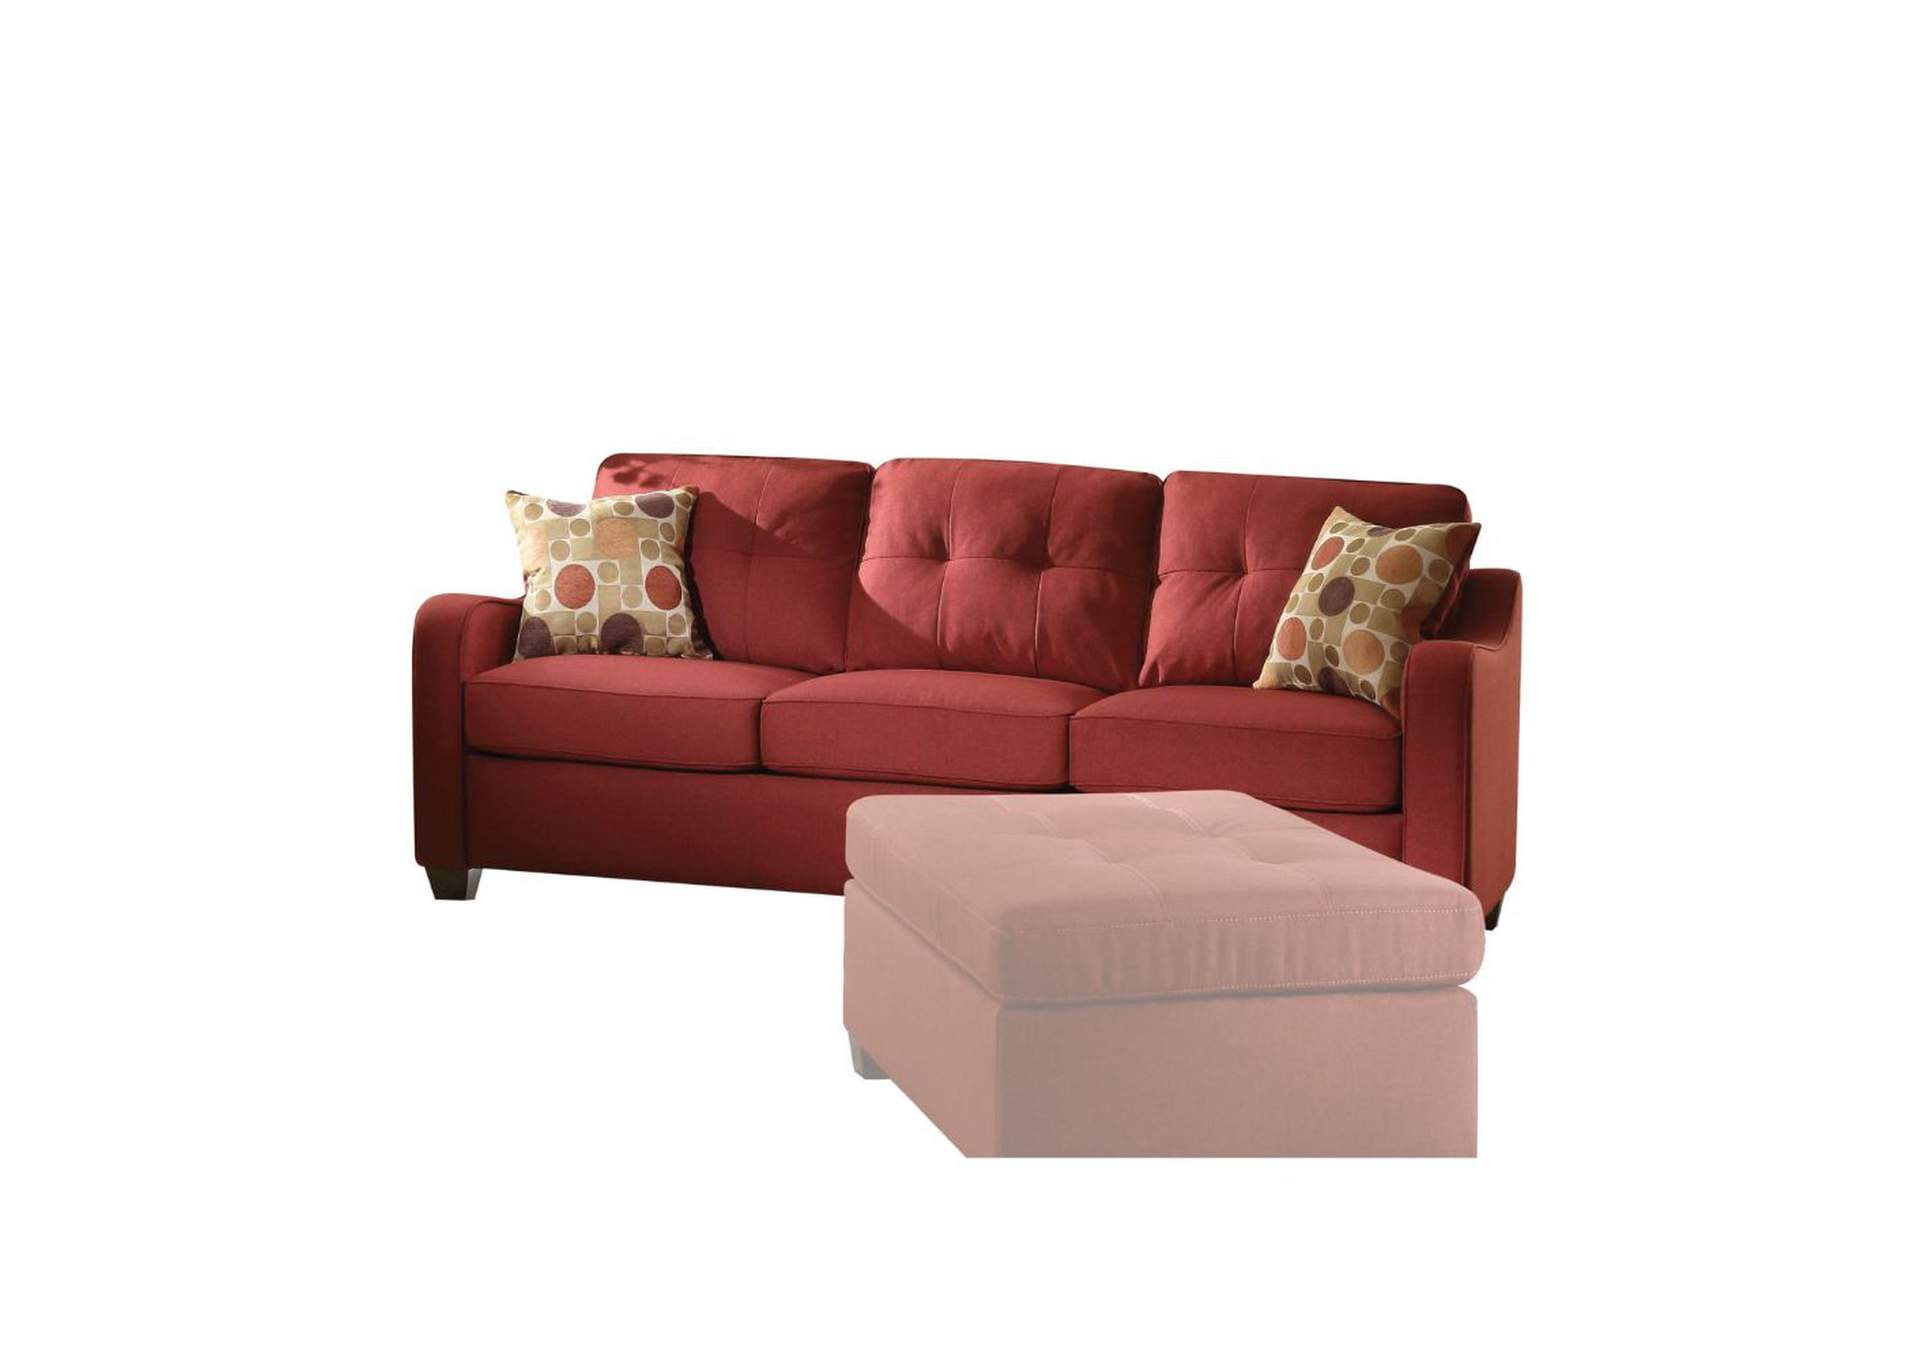 Cleavon II Red Sofa w/2 Pillow,Acme